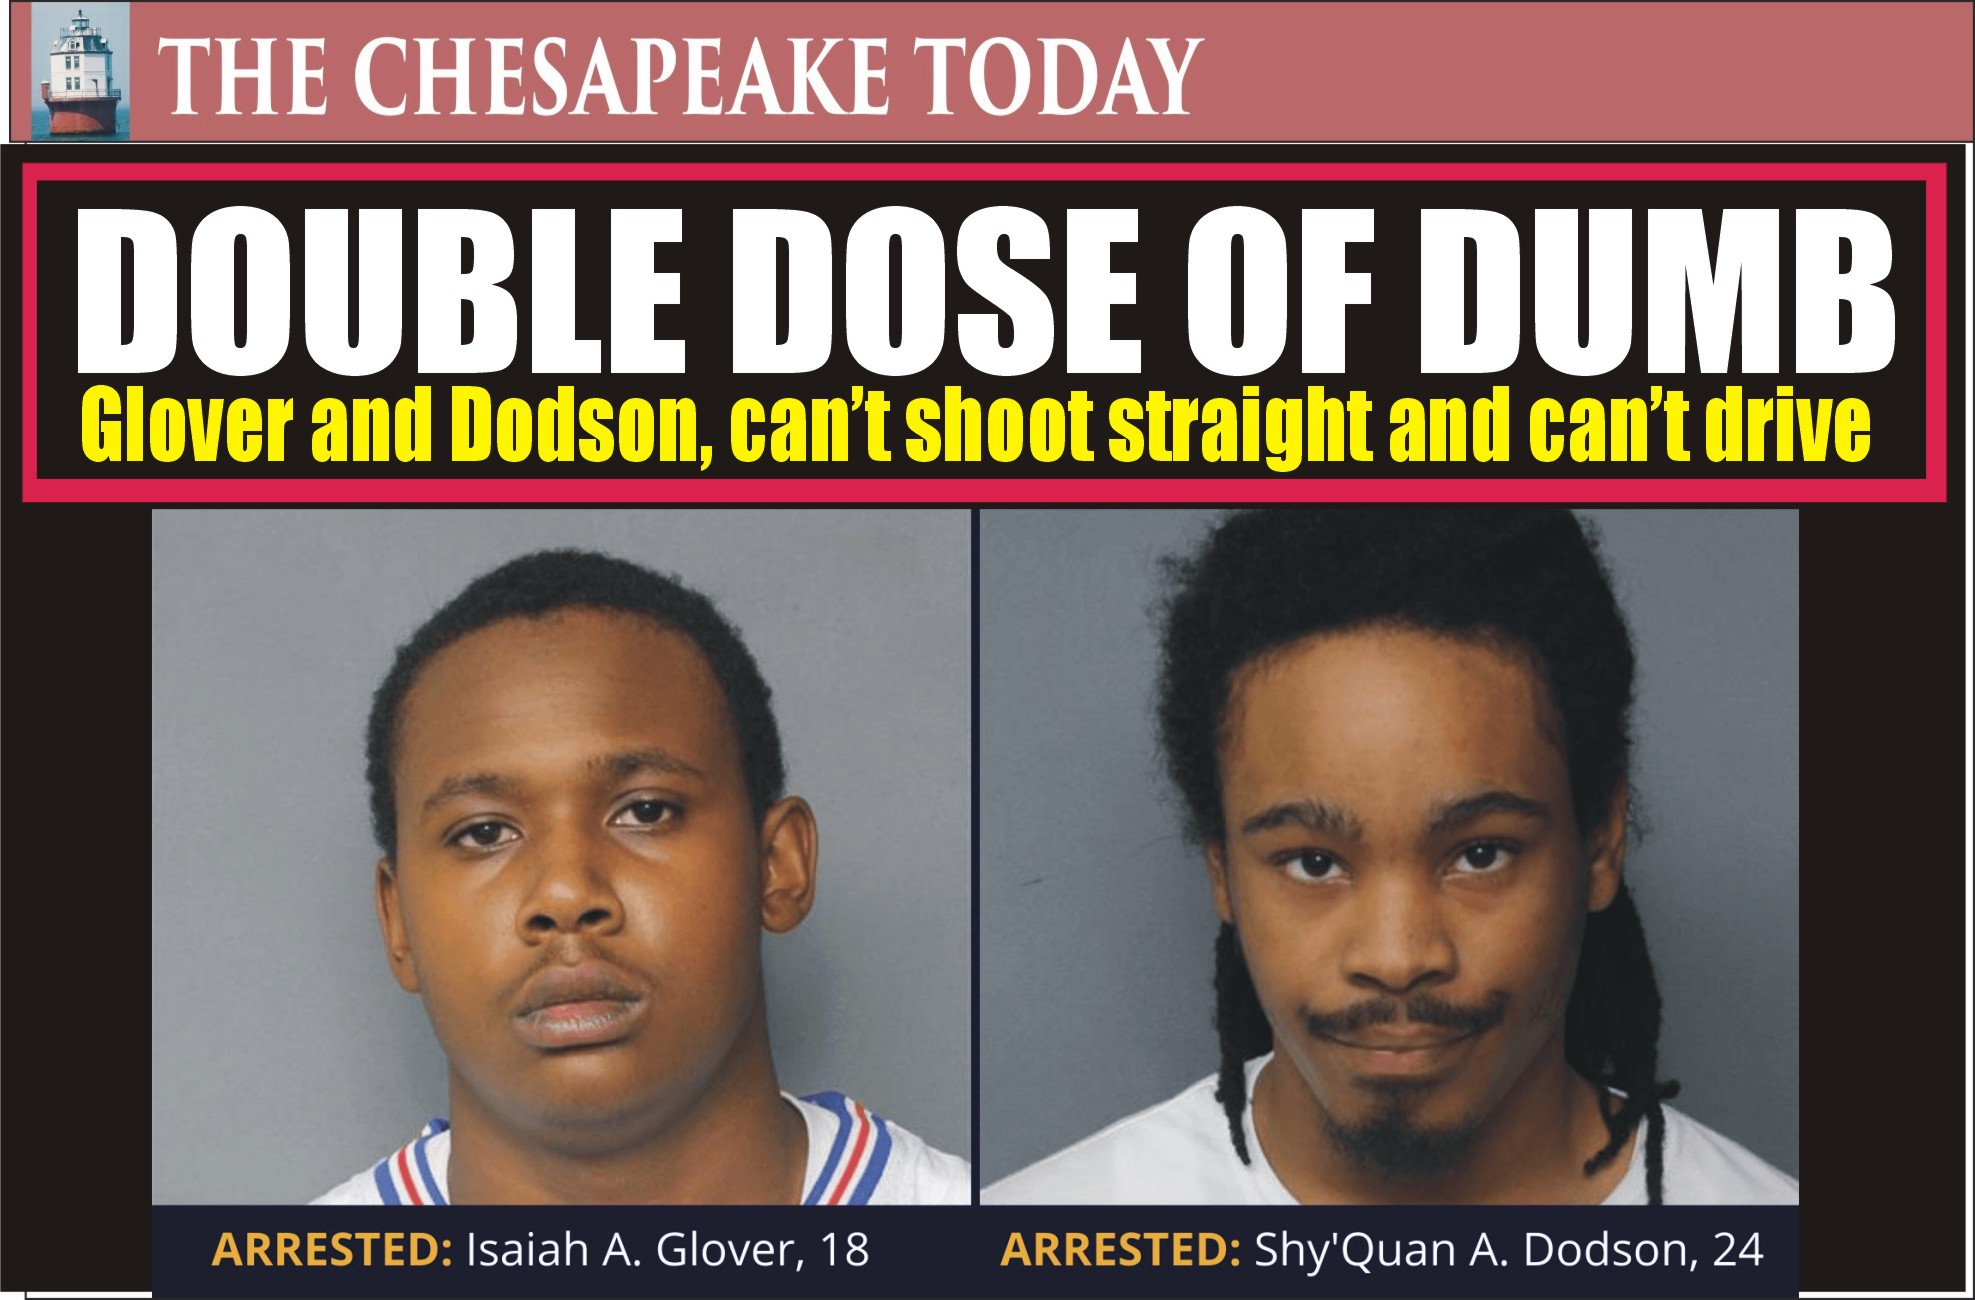 NORFOLK POLICE BEAT NEWS: Shooting Yahoos Suspects Isaiah A. Glover and Shy'Quan A. Dodson in custody following a late-night shooting and police pursuit